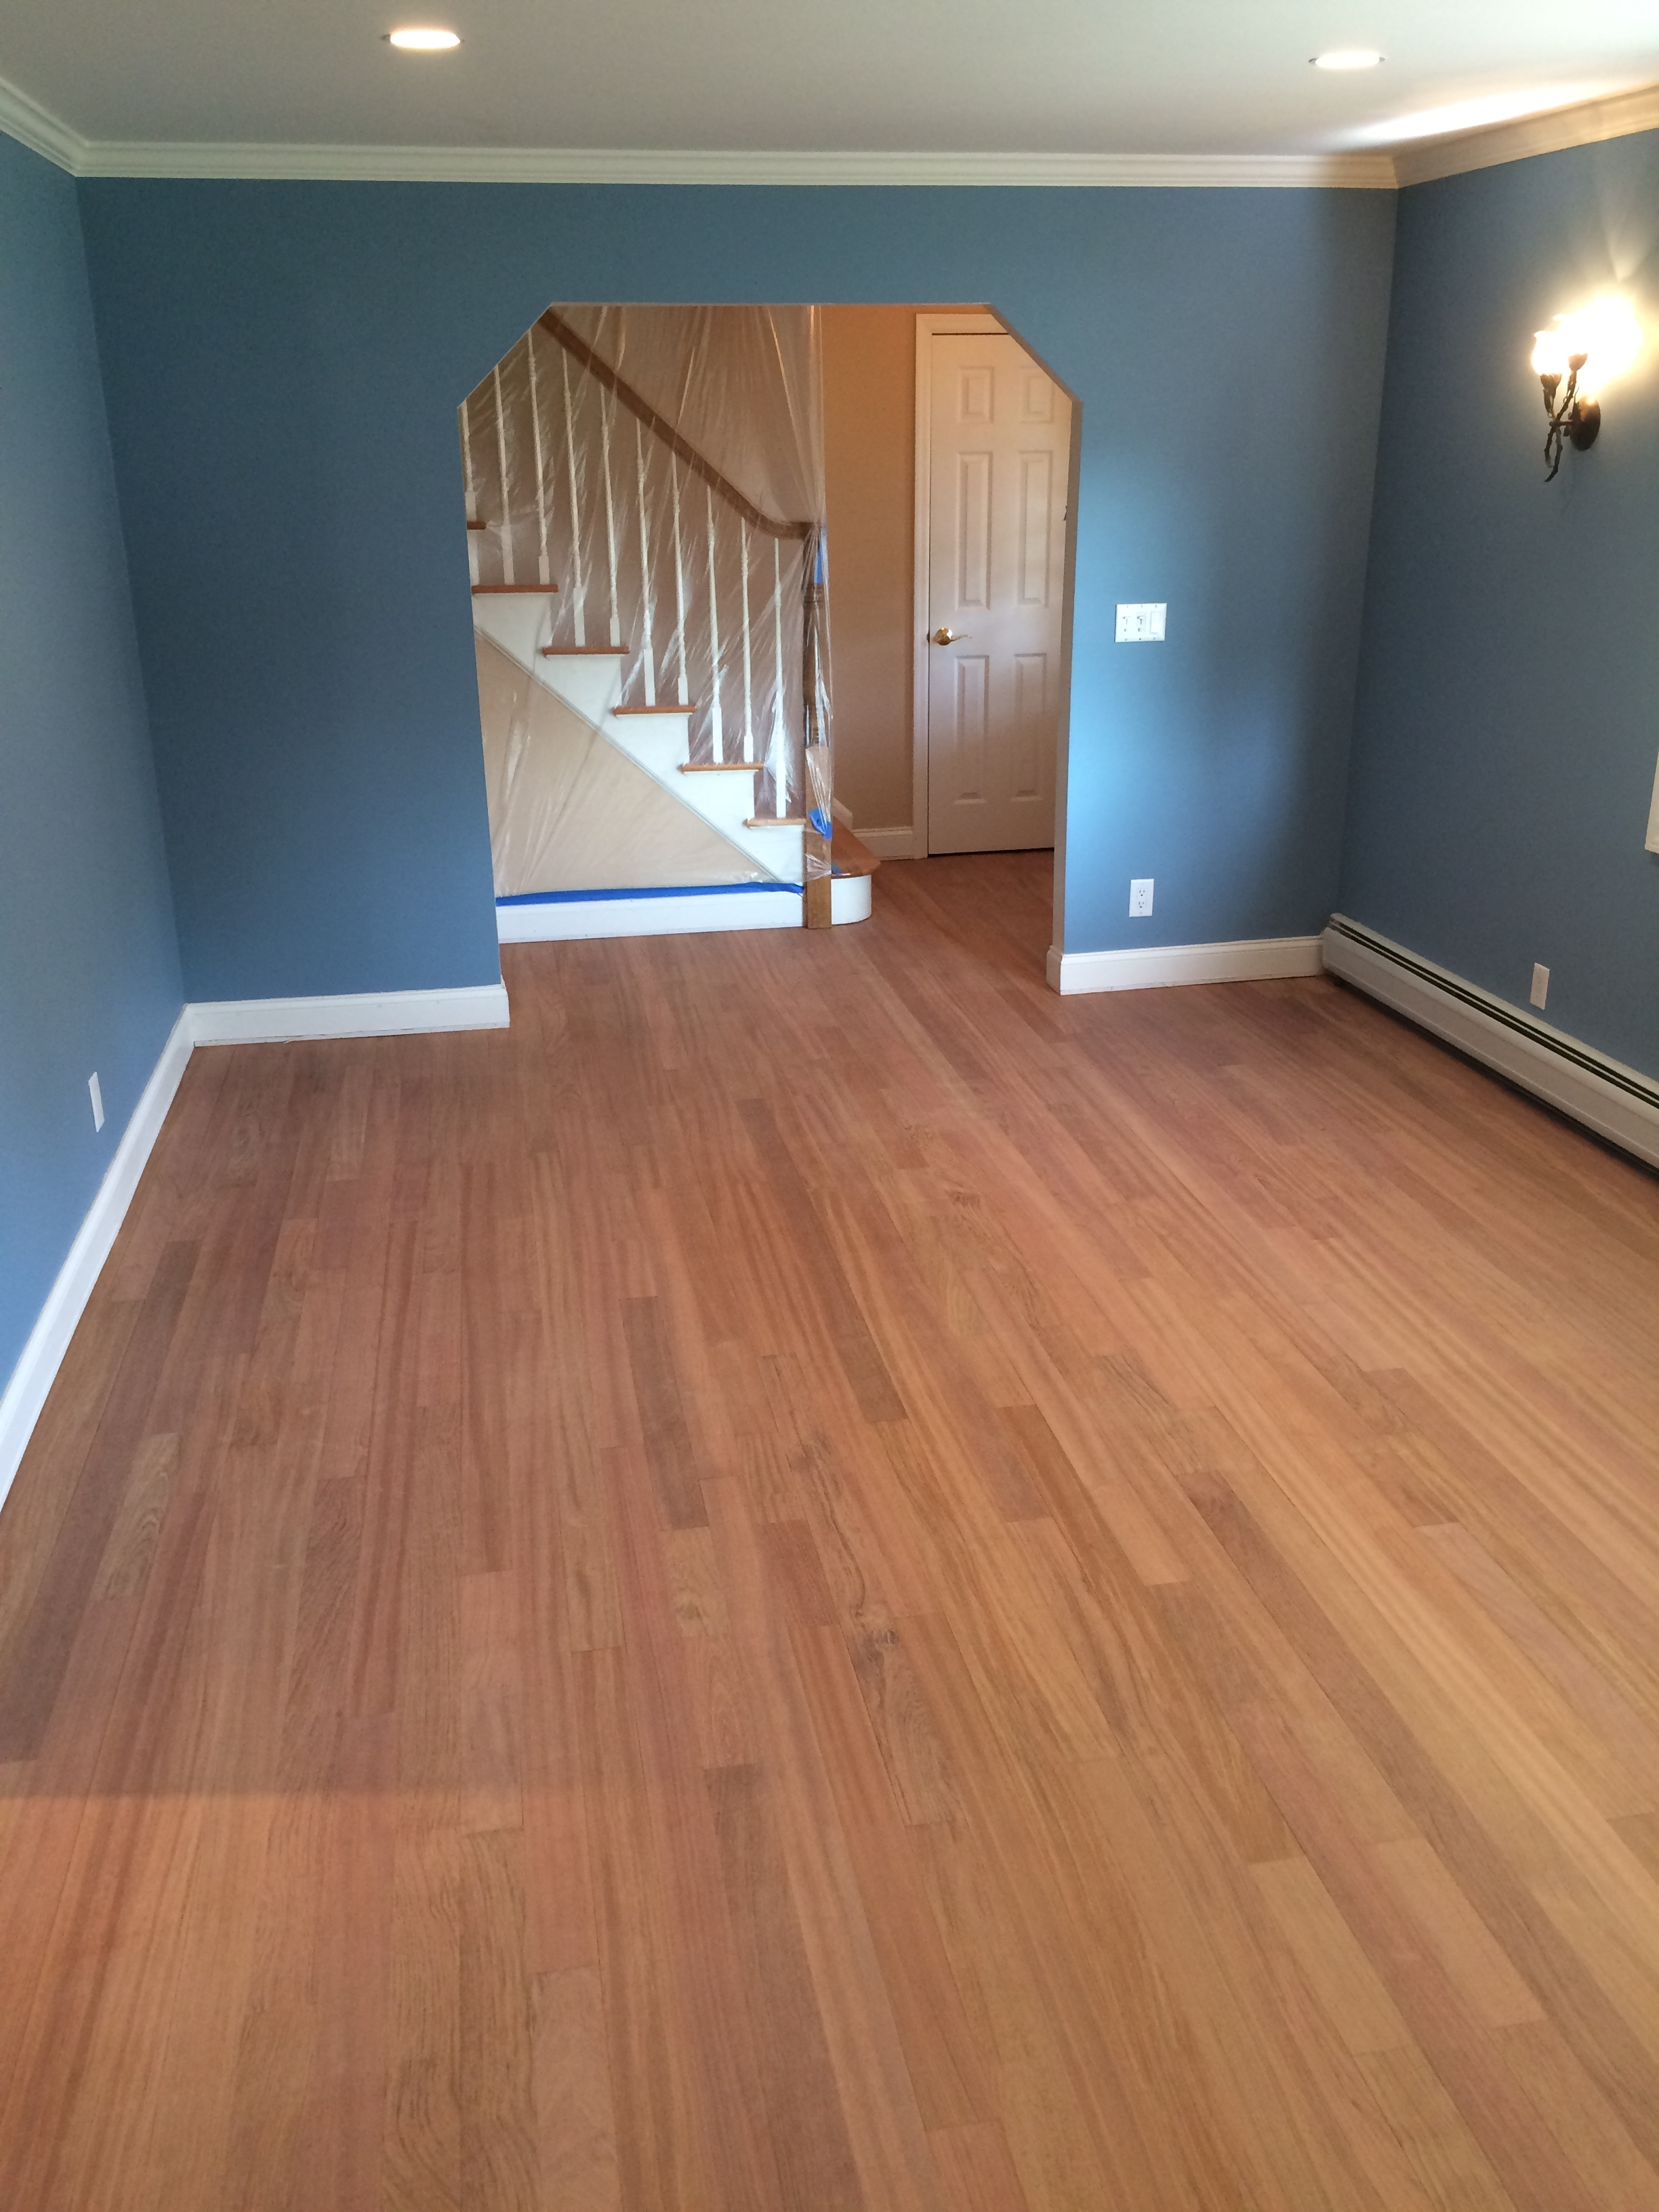 Vgj floors long branch new jersey for Hardwood floors long branch nj